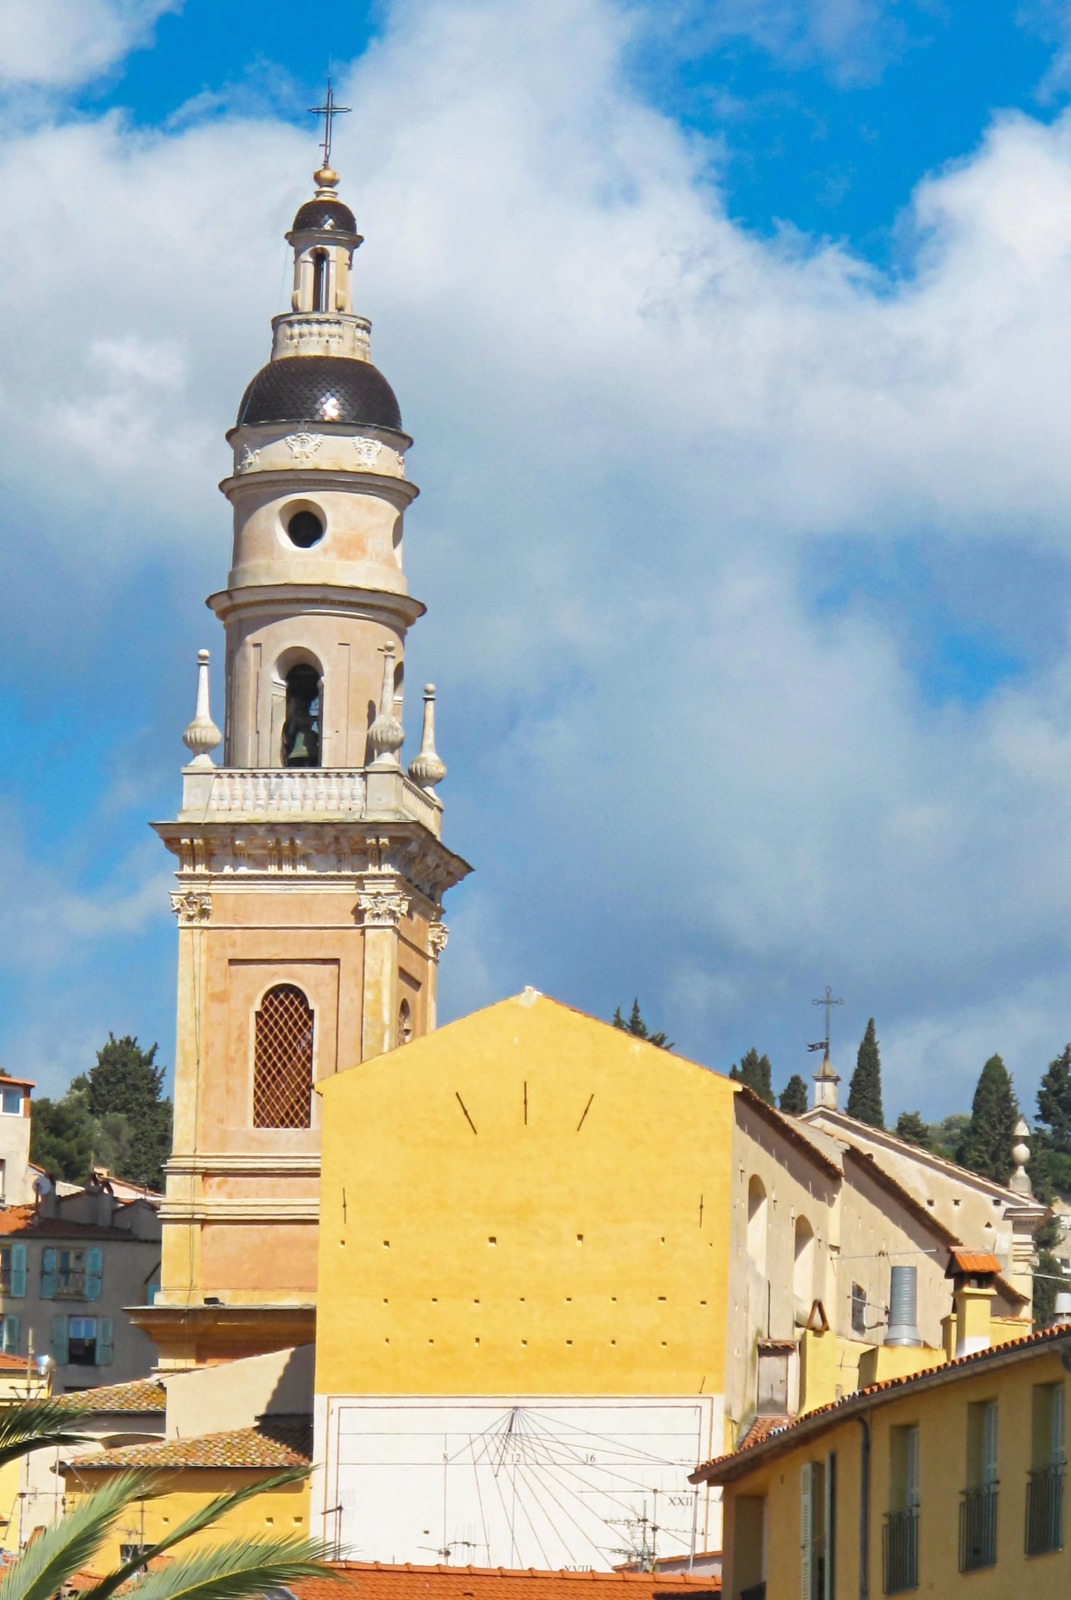 The bell tower of the basilica. Photo: Tangopaso (Public Domain)